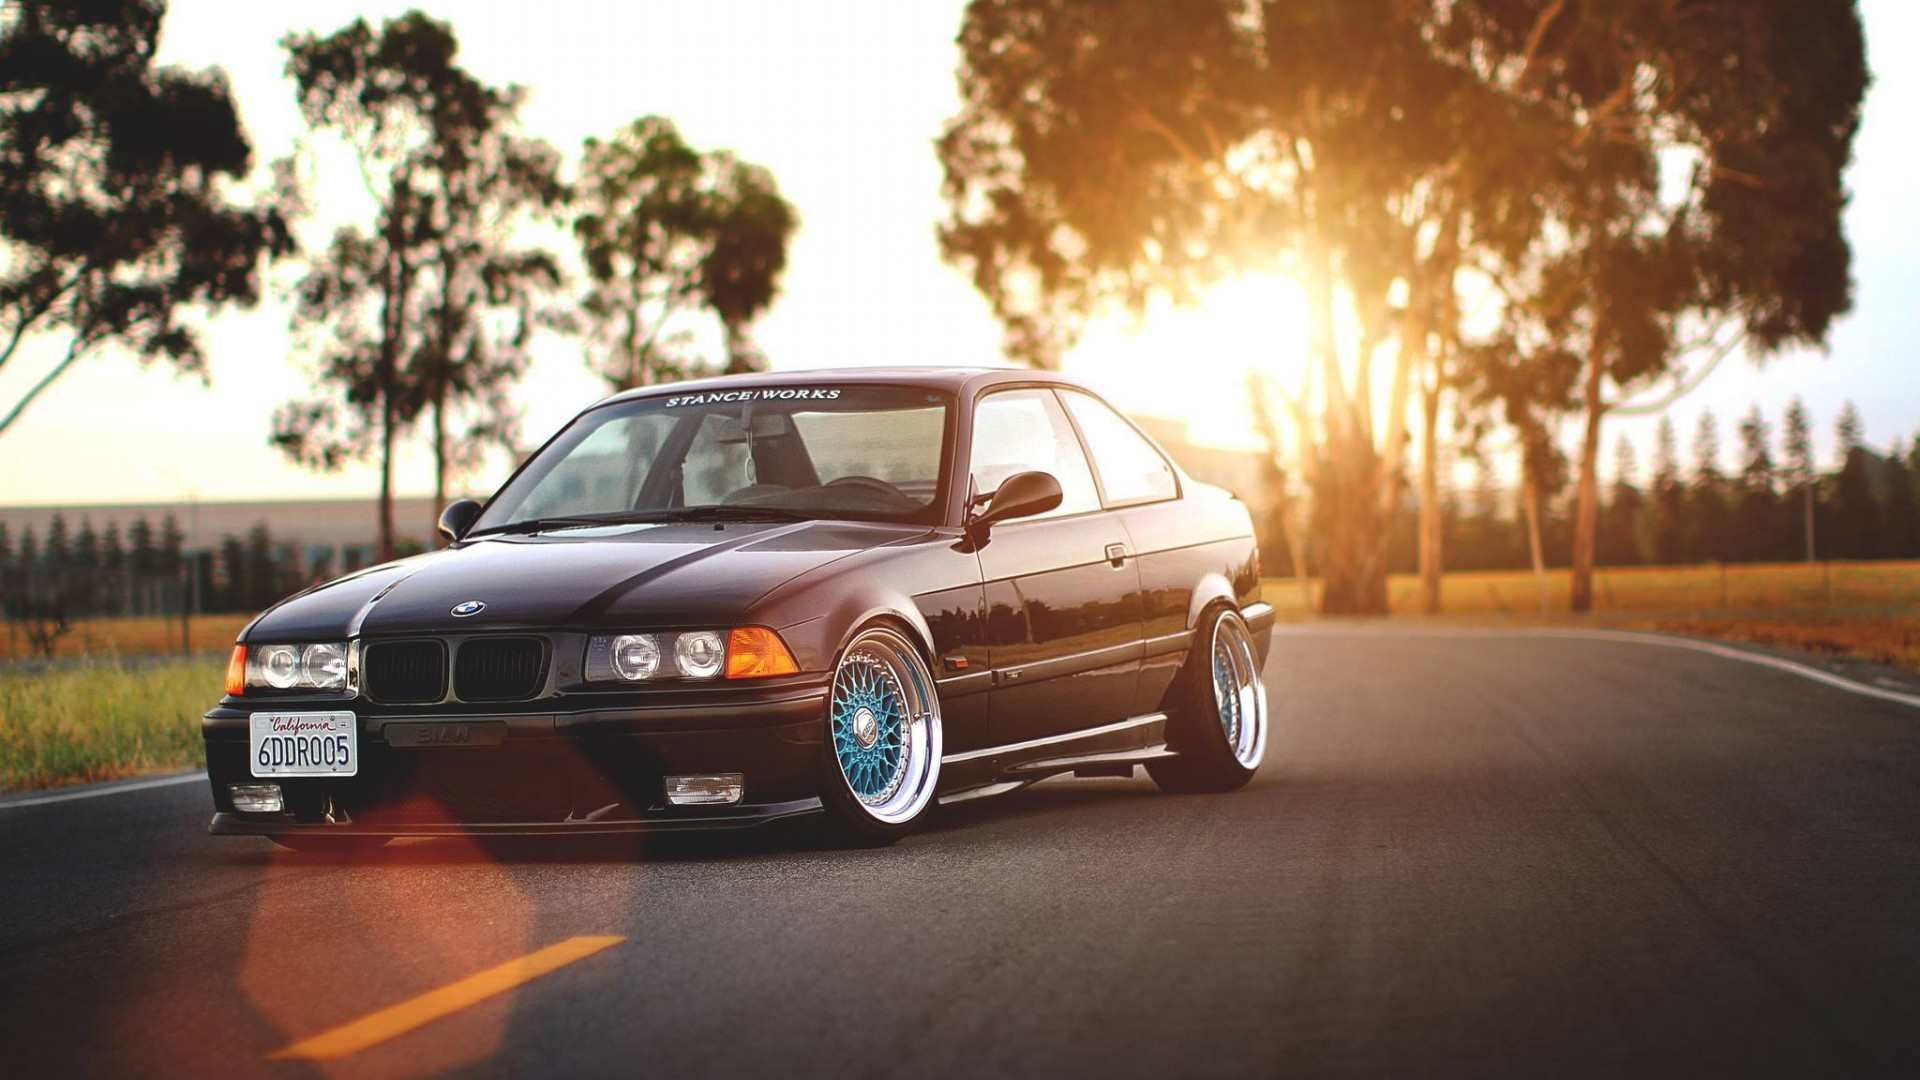 BMW E36 Wallpaper 15  [1920x1080]